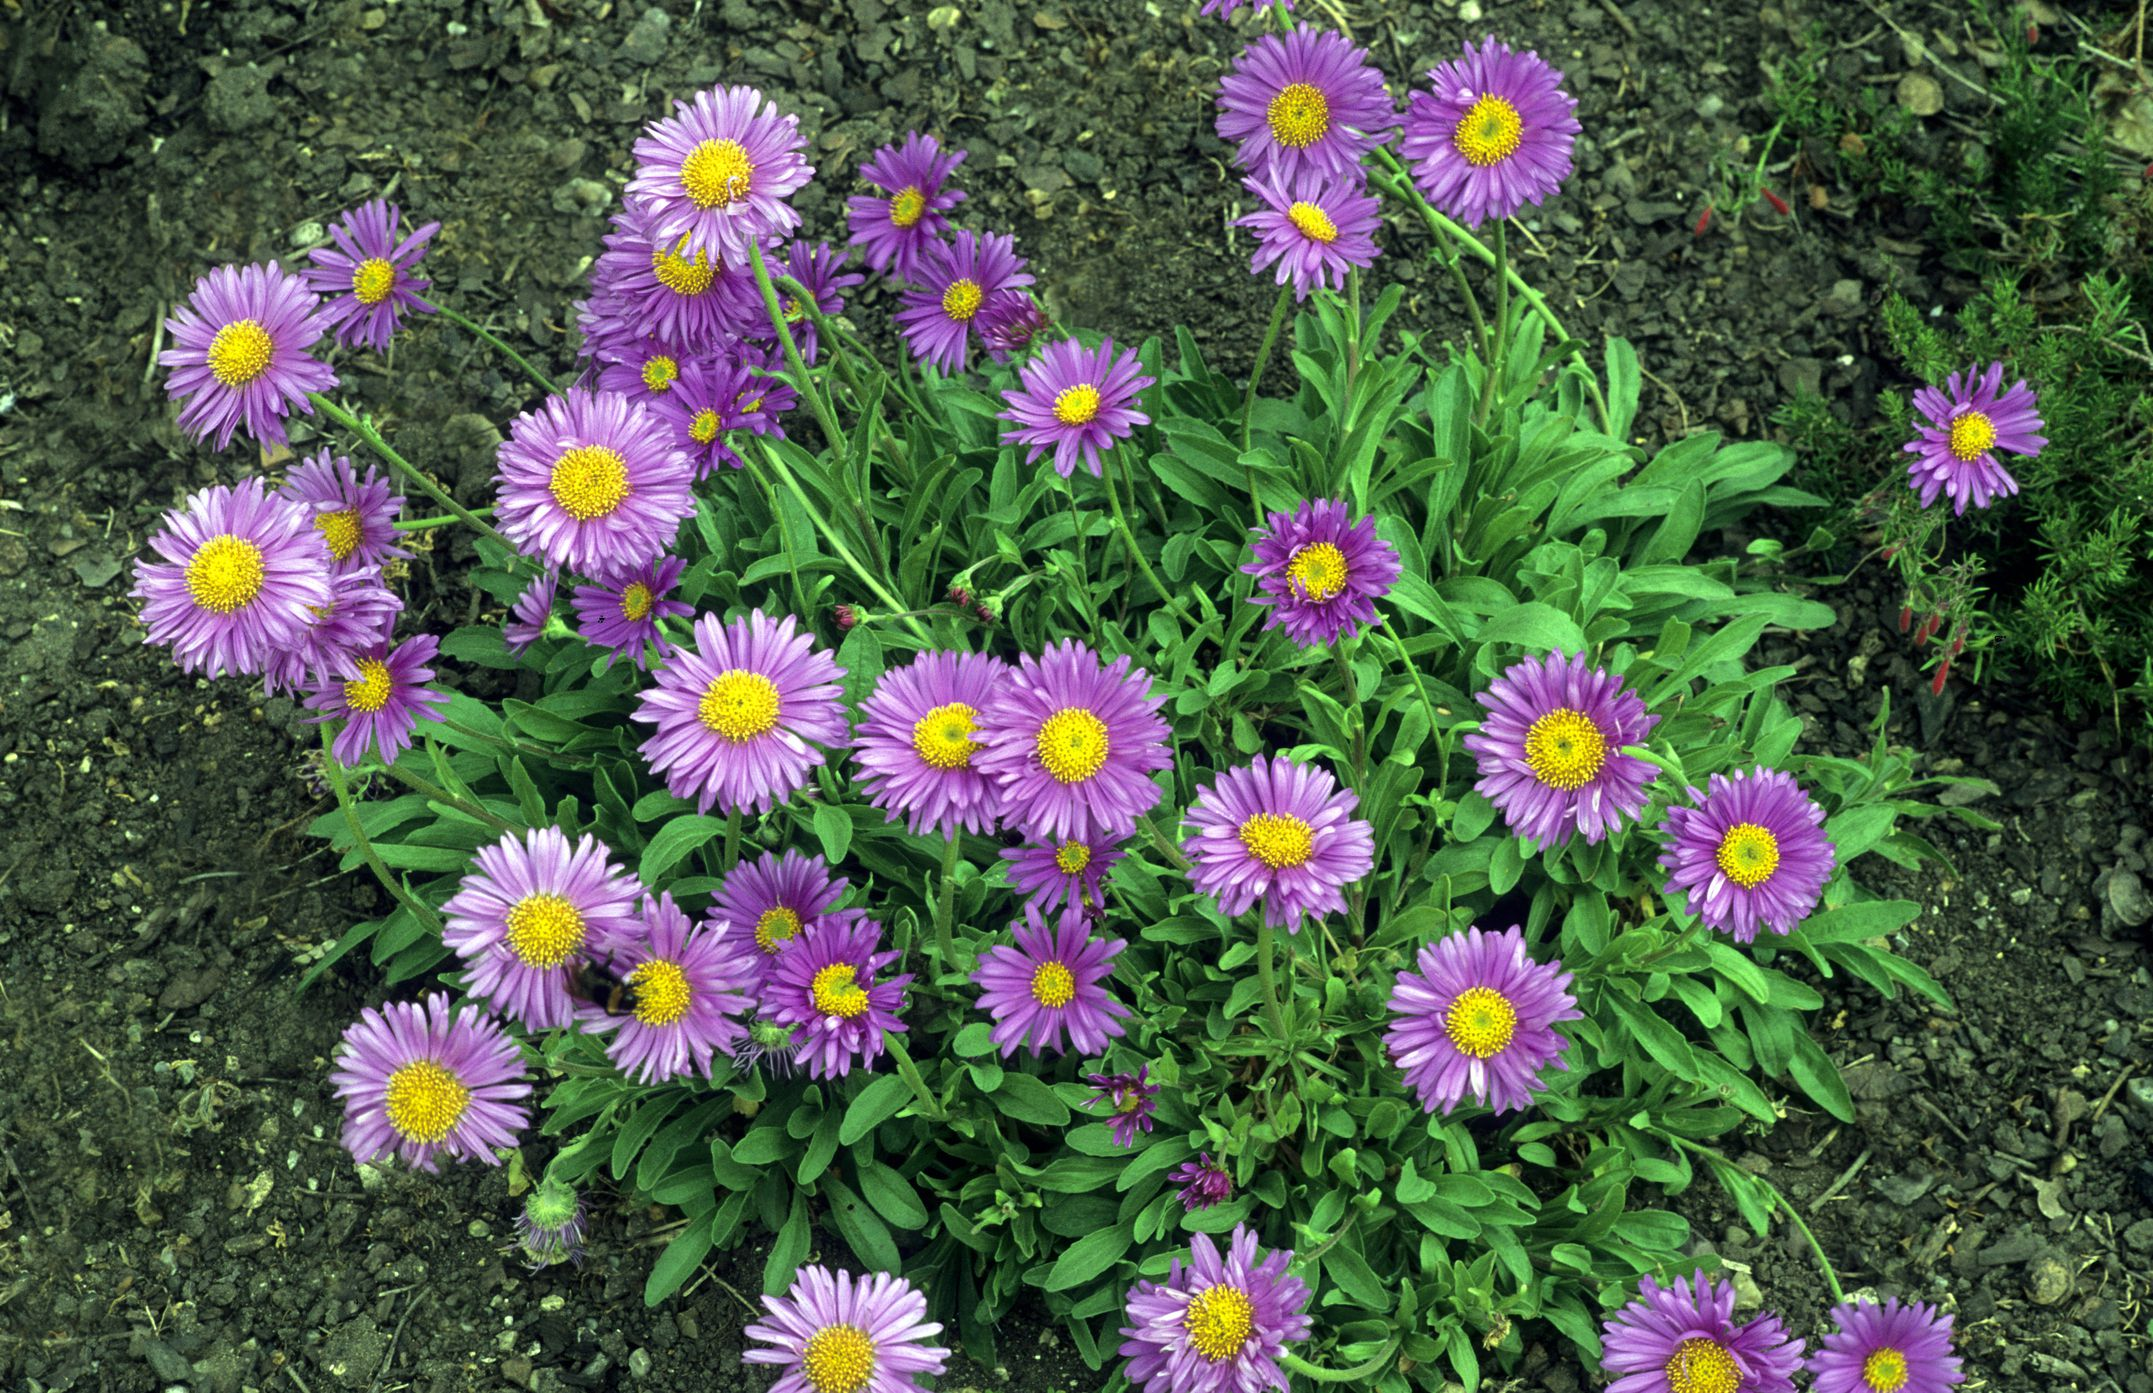 Grow perennial aster flower plants for fall blooms izmirmasajfo